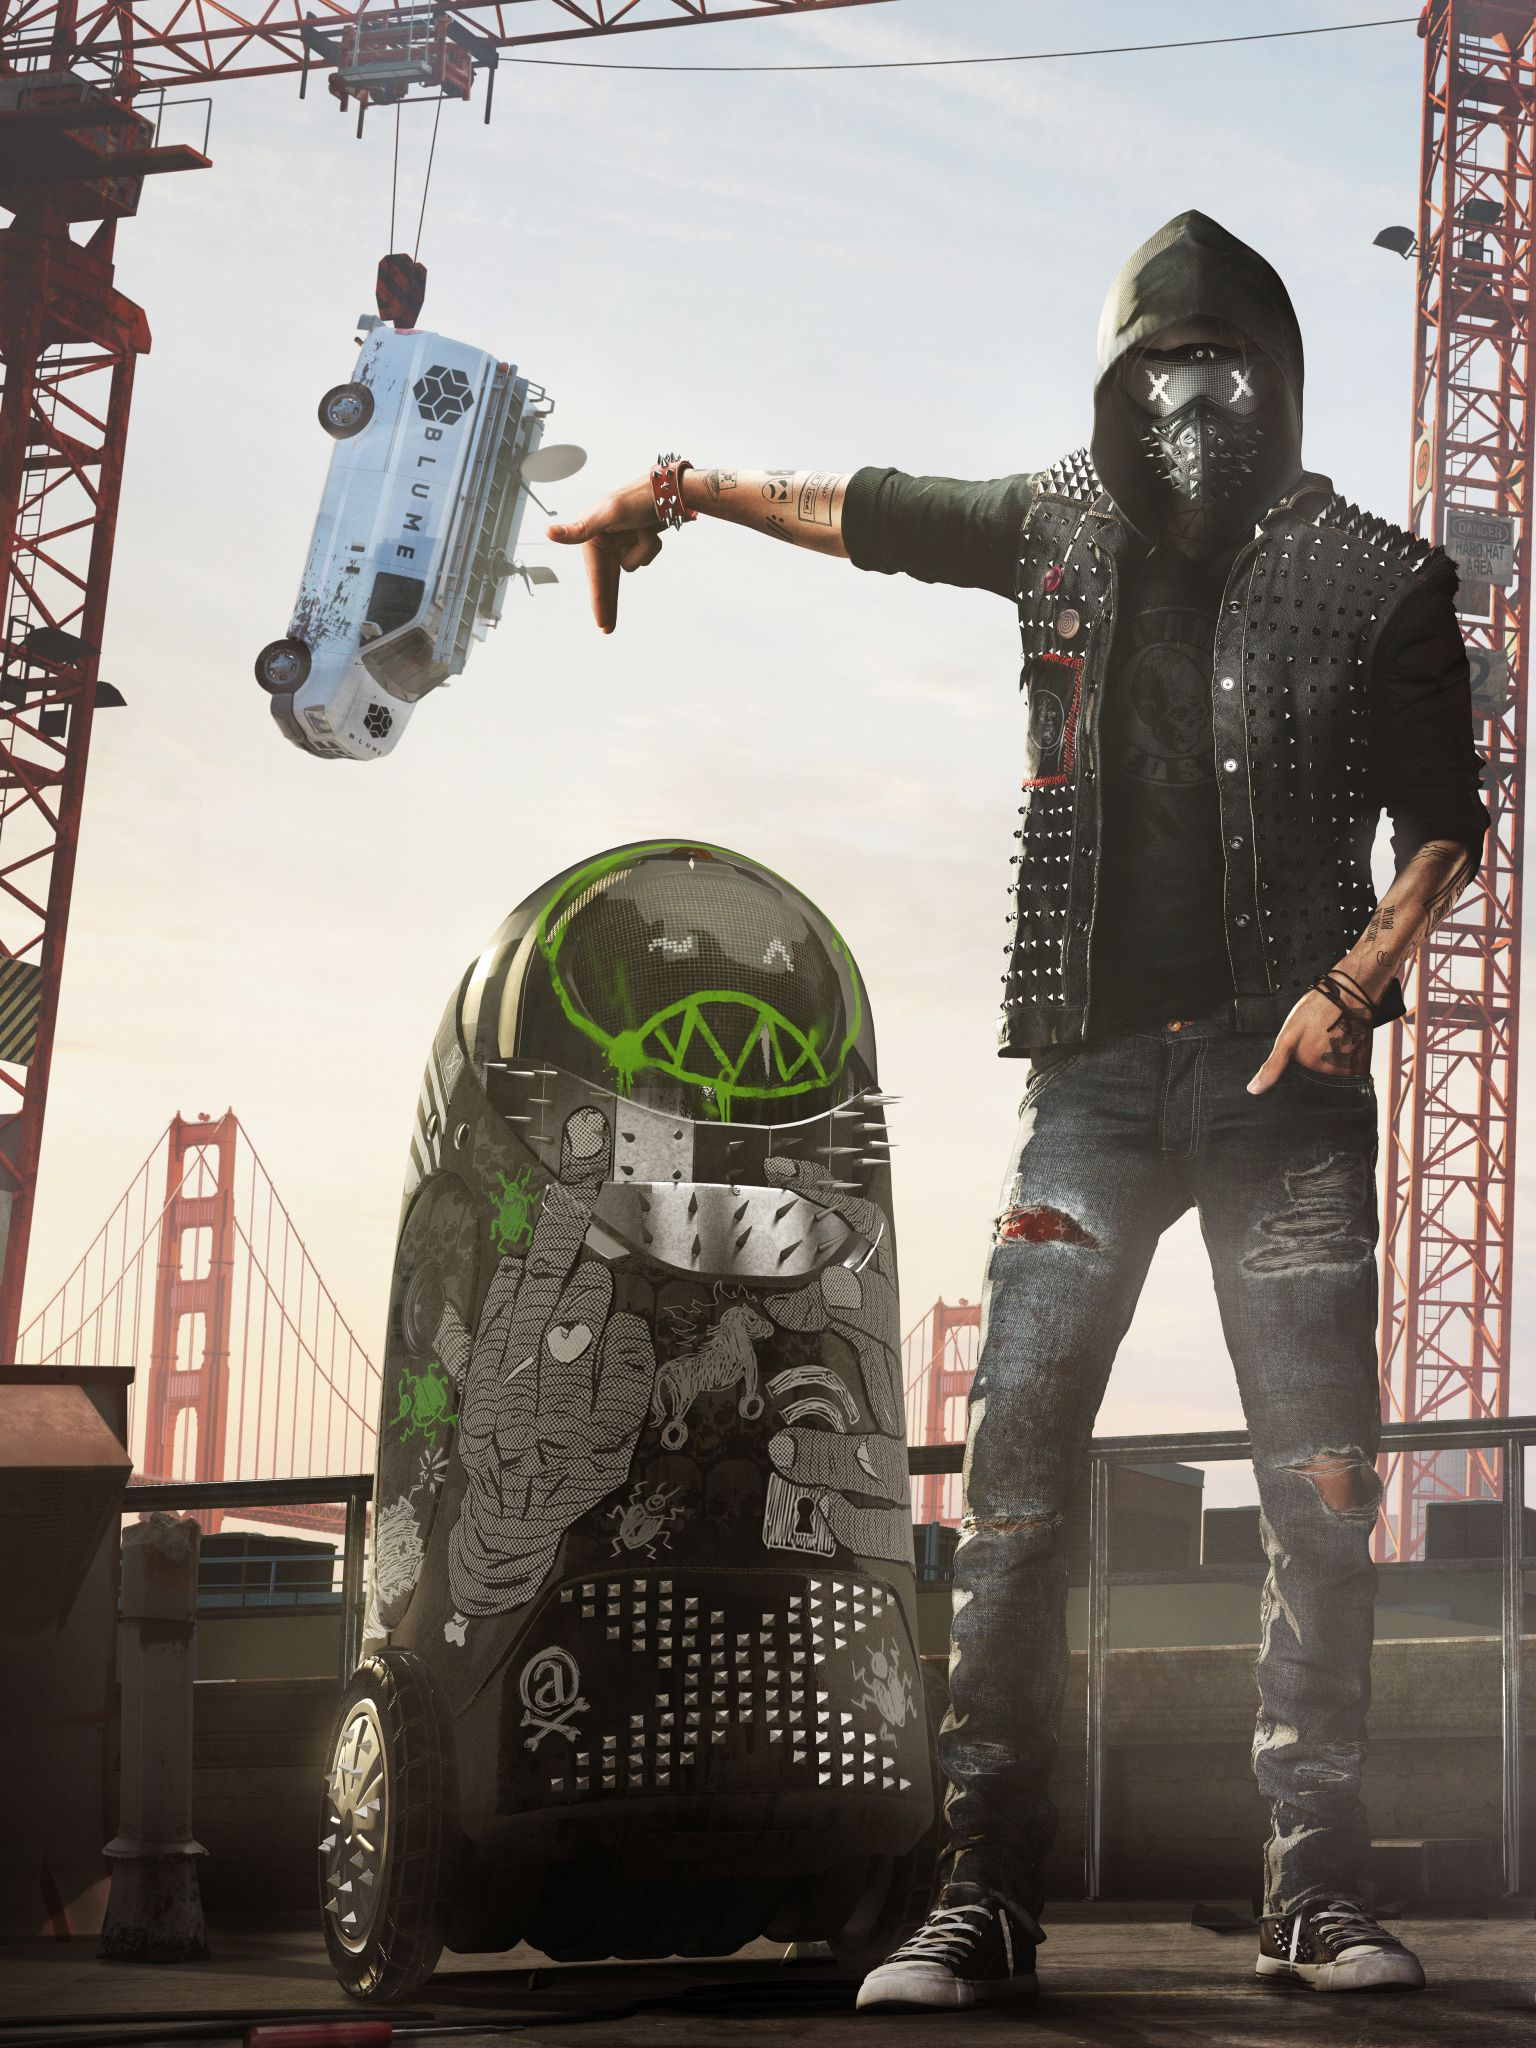 Hd Wallpaper 40 Watch Dogs Watch Dogs Game Gaming Wallpapers